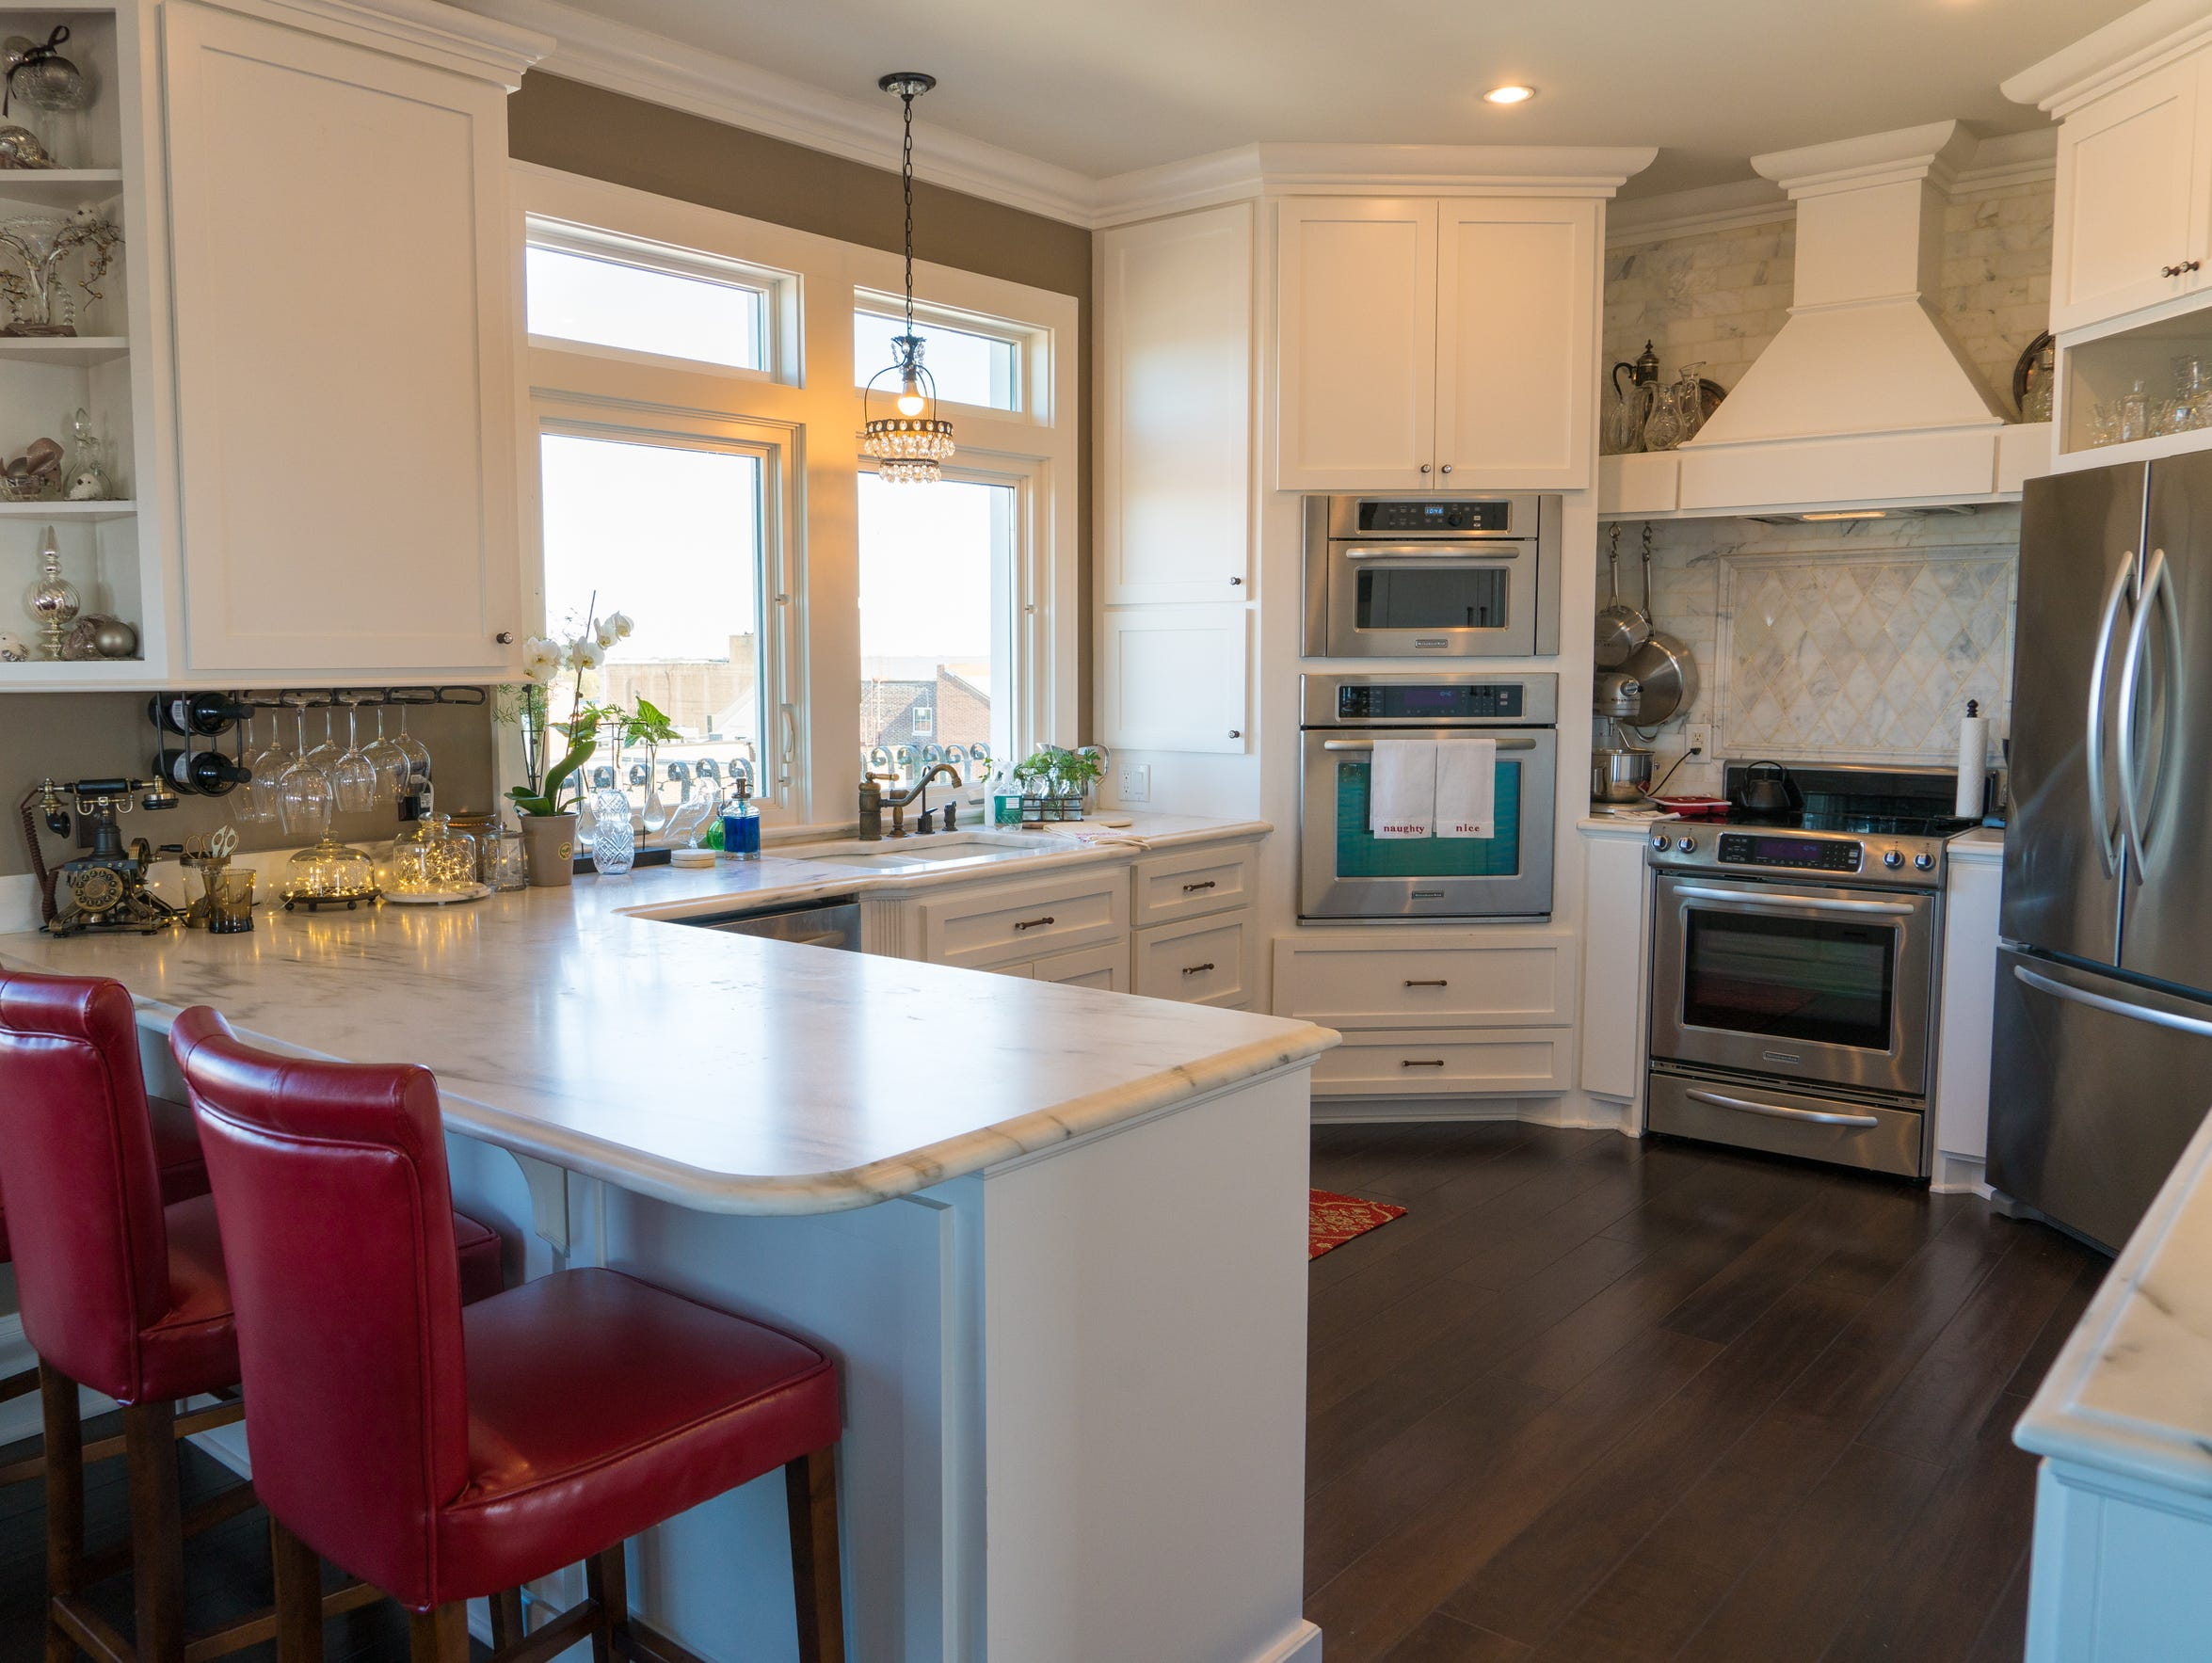 The kitchen has Calcutta Danby Marble counter tops